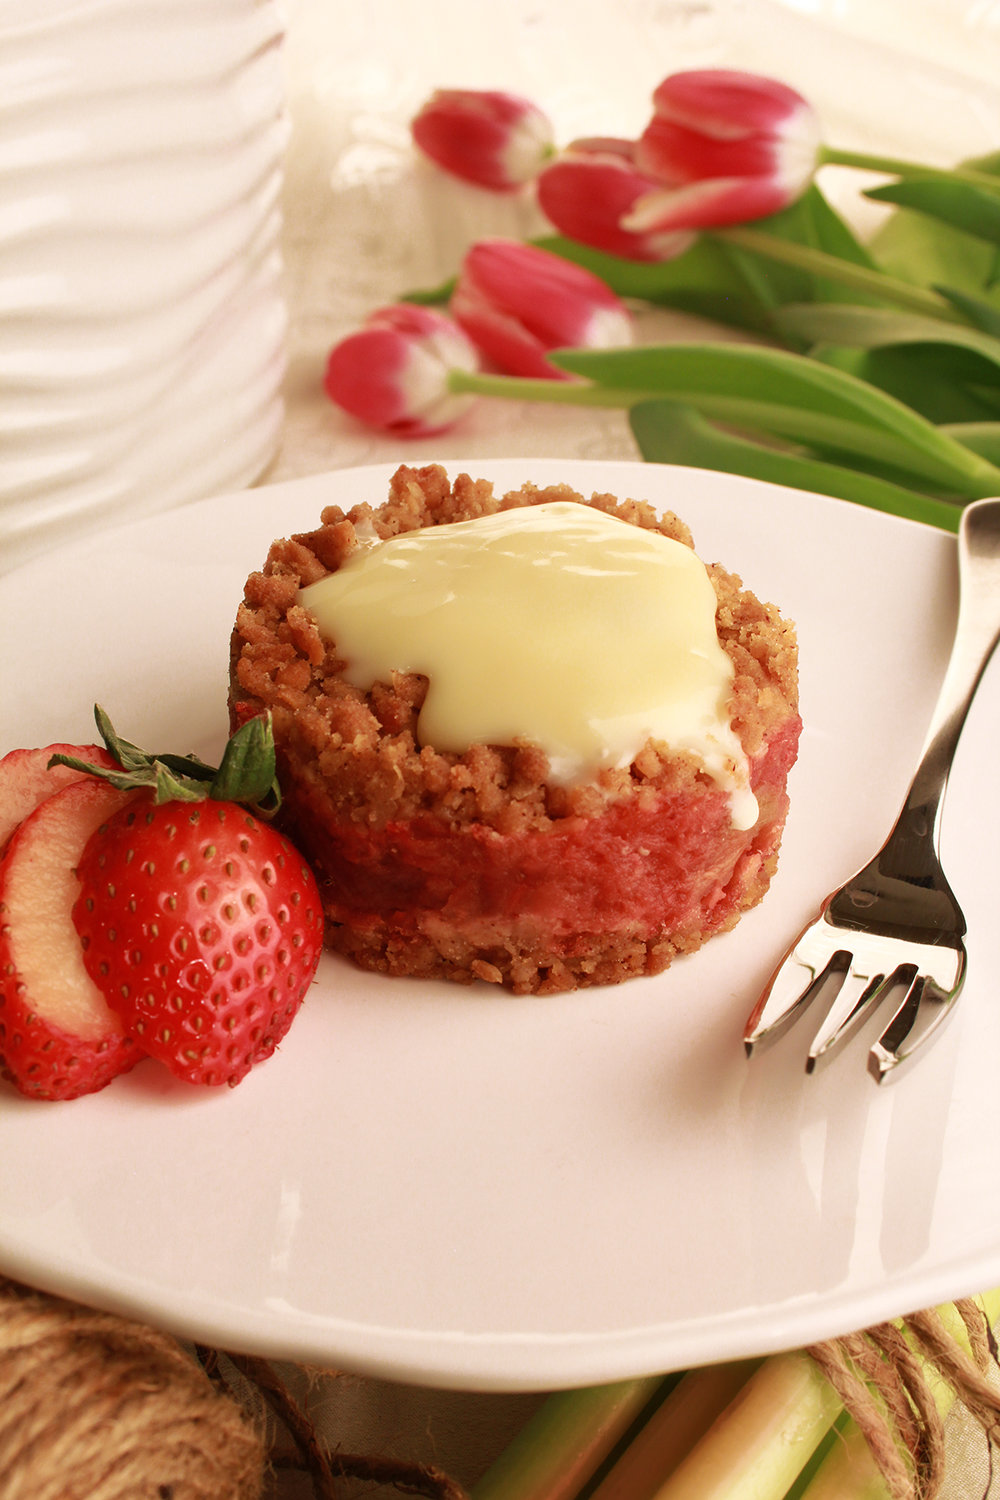 AND... our new Strawberry Rhubarb Crisp Melt-Away...